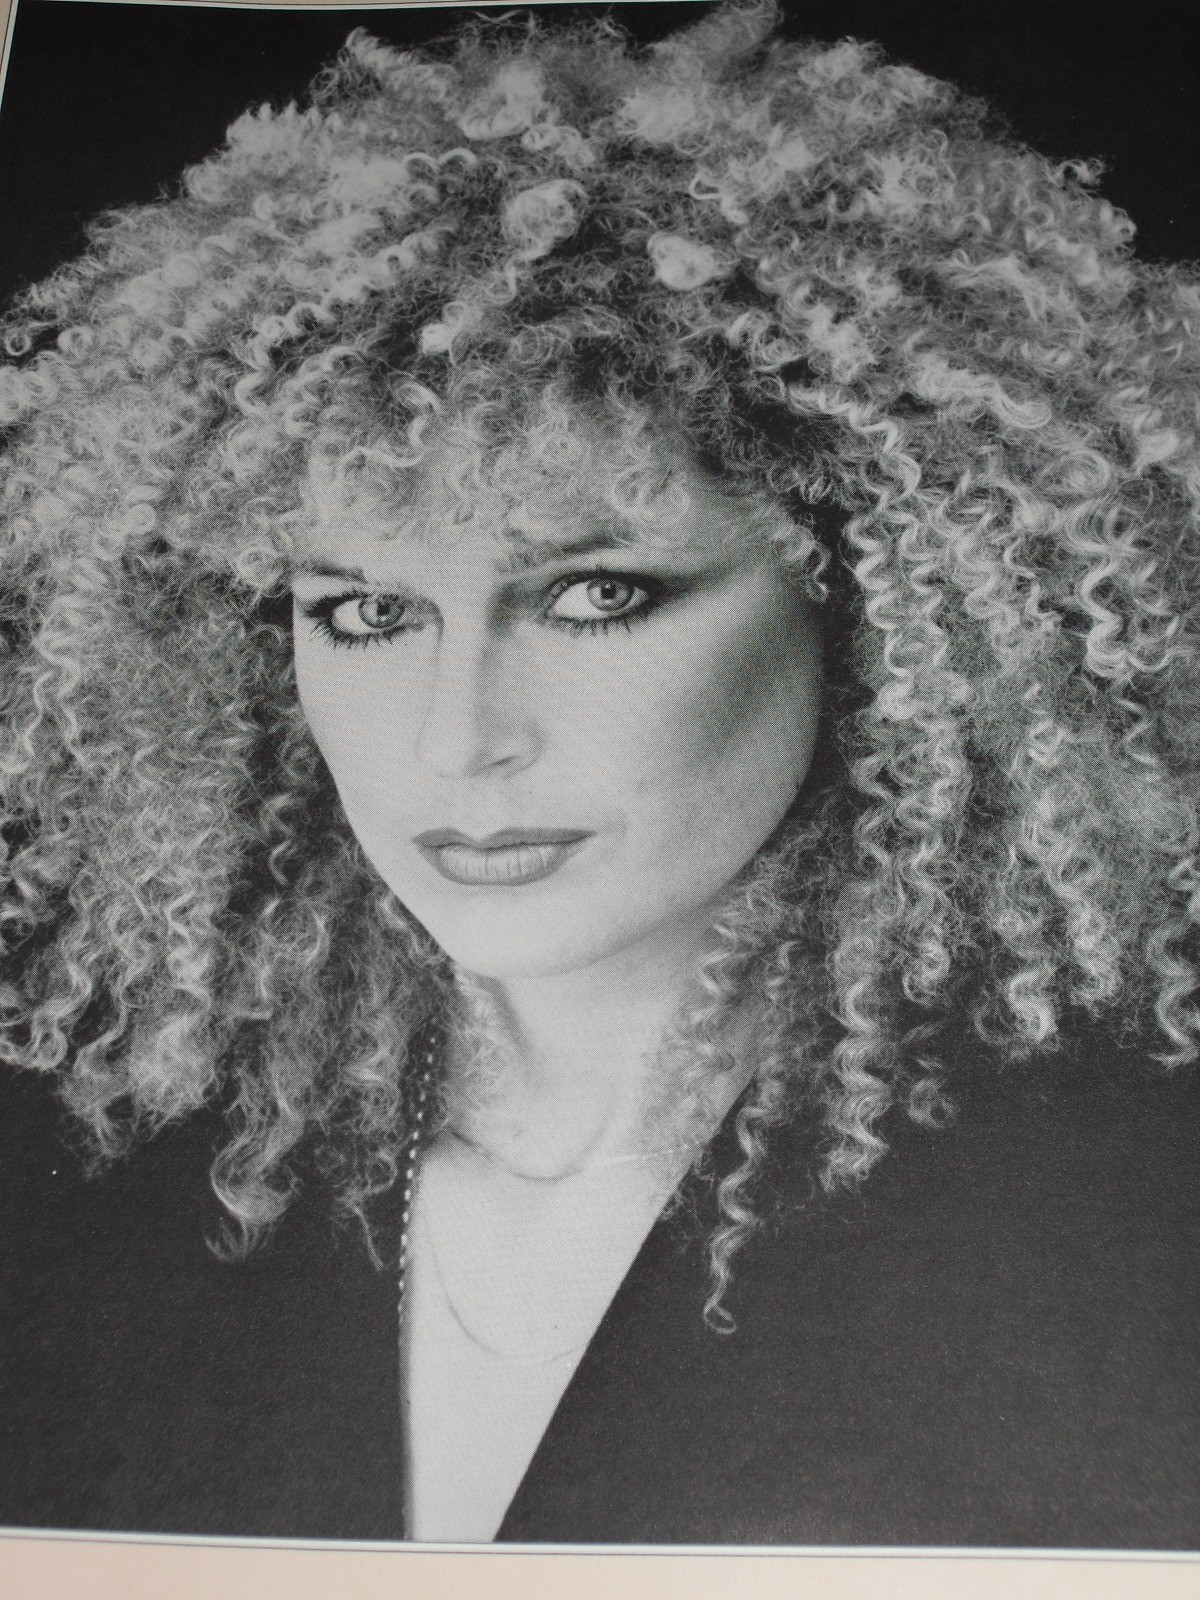 Woman with dramatic, curly hair